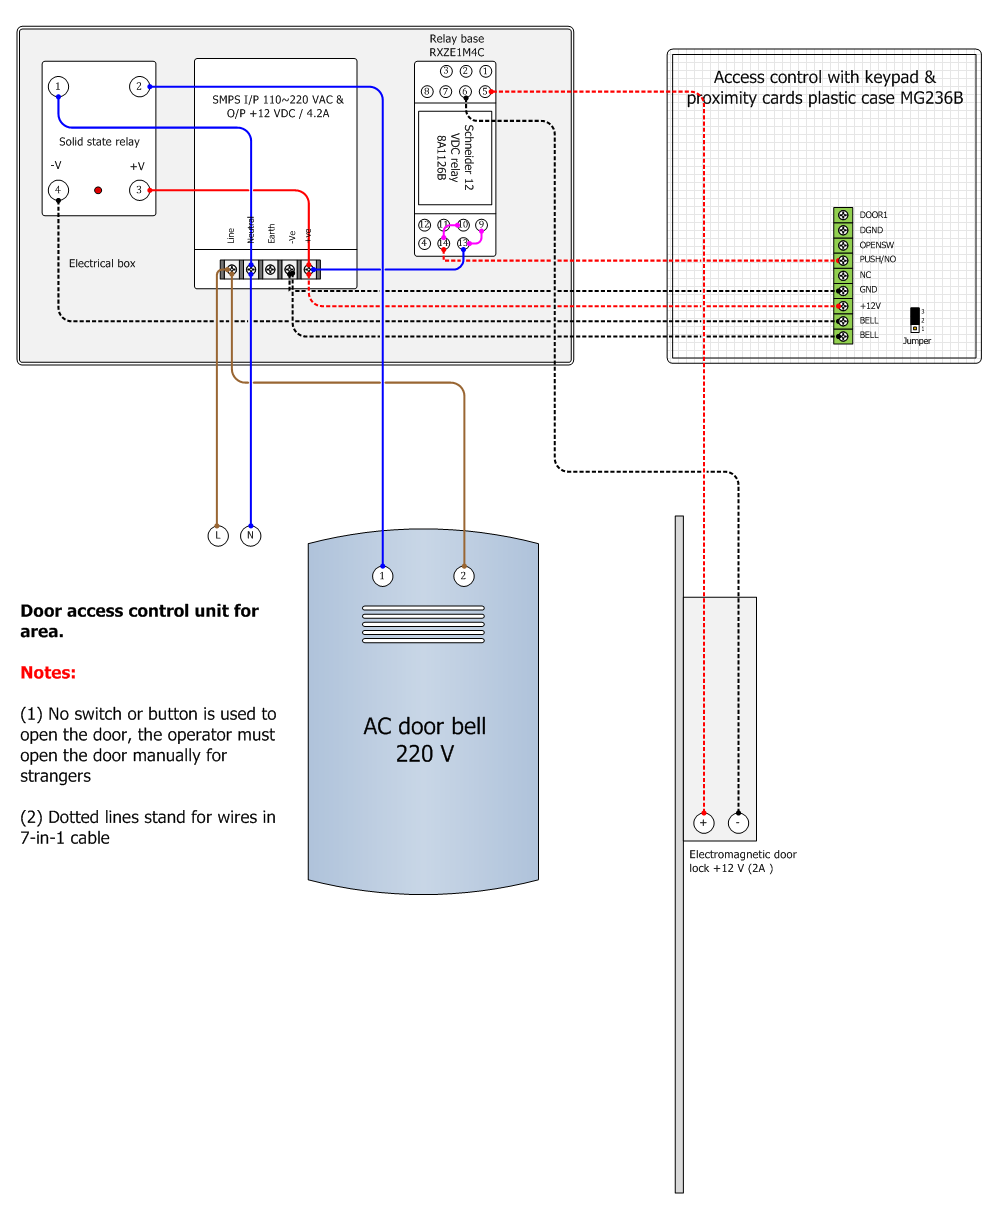 medium resolution of eng shady mohsen blog access control mg236b wiring diagramac door bell